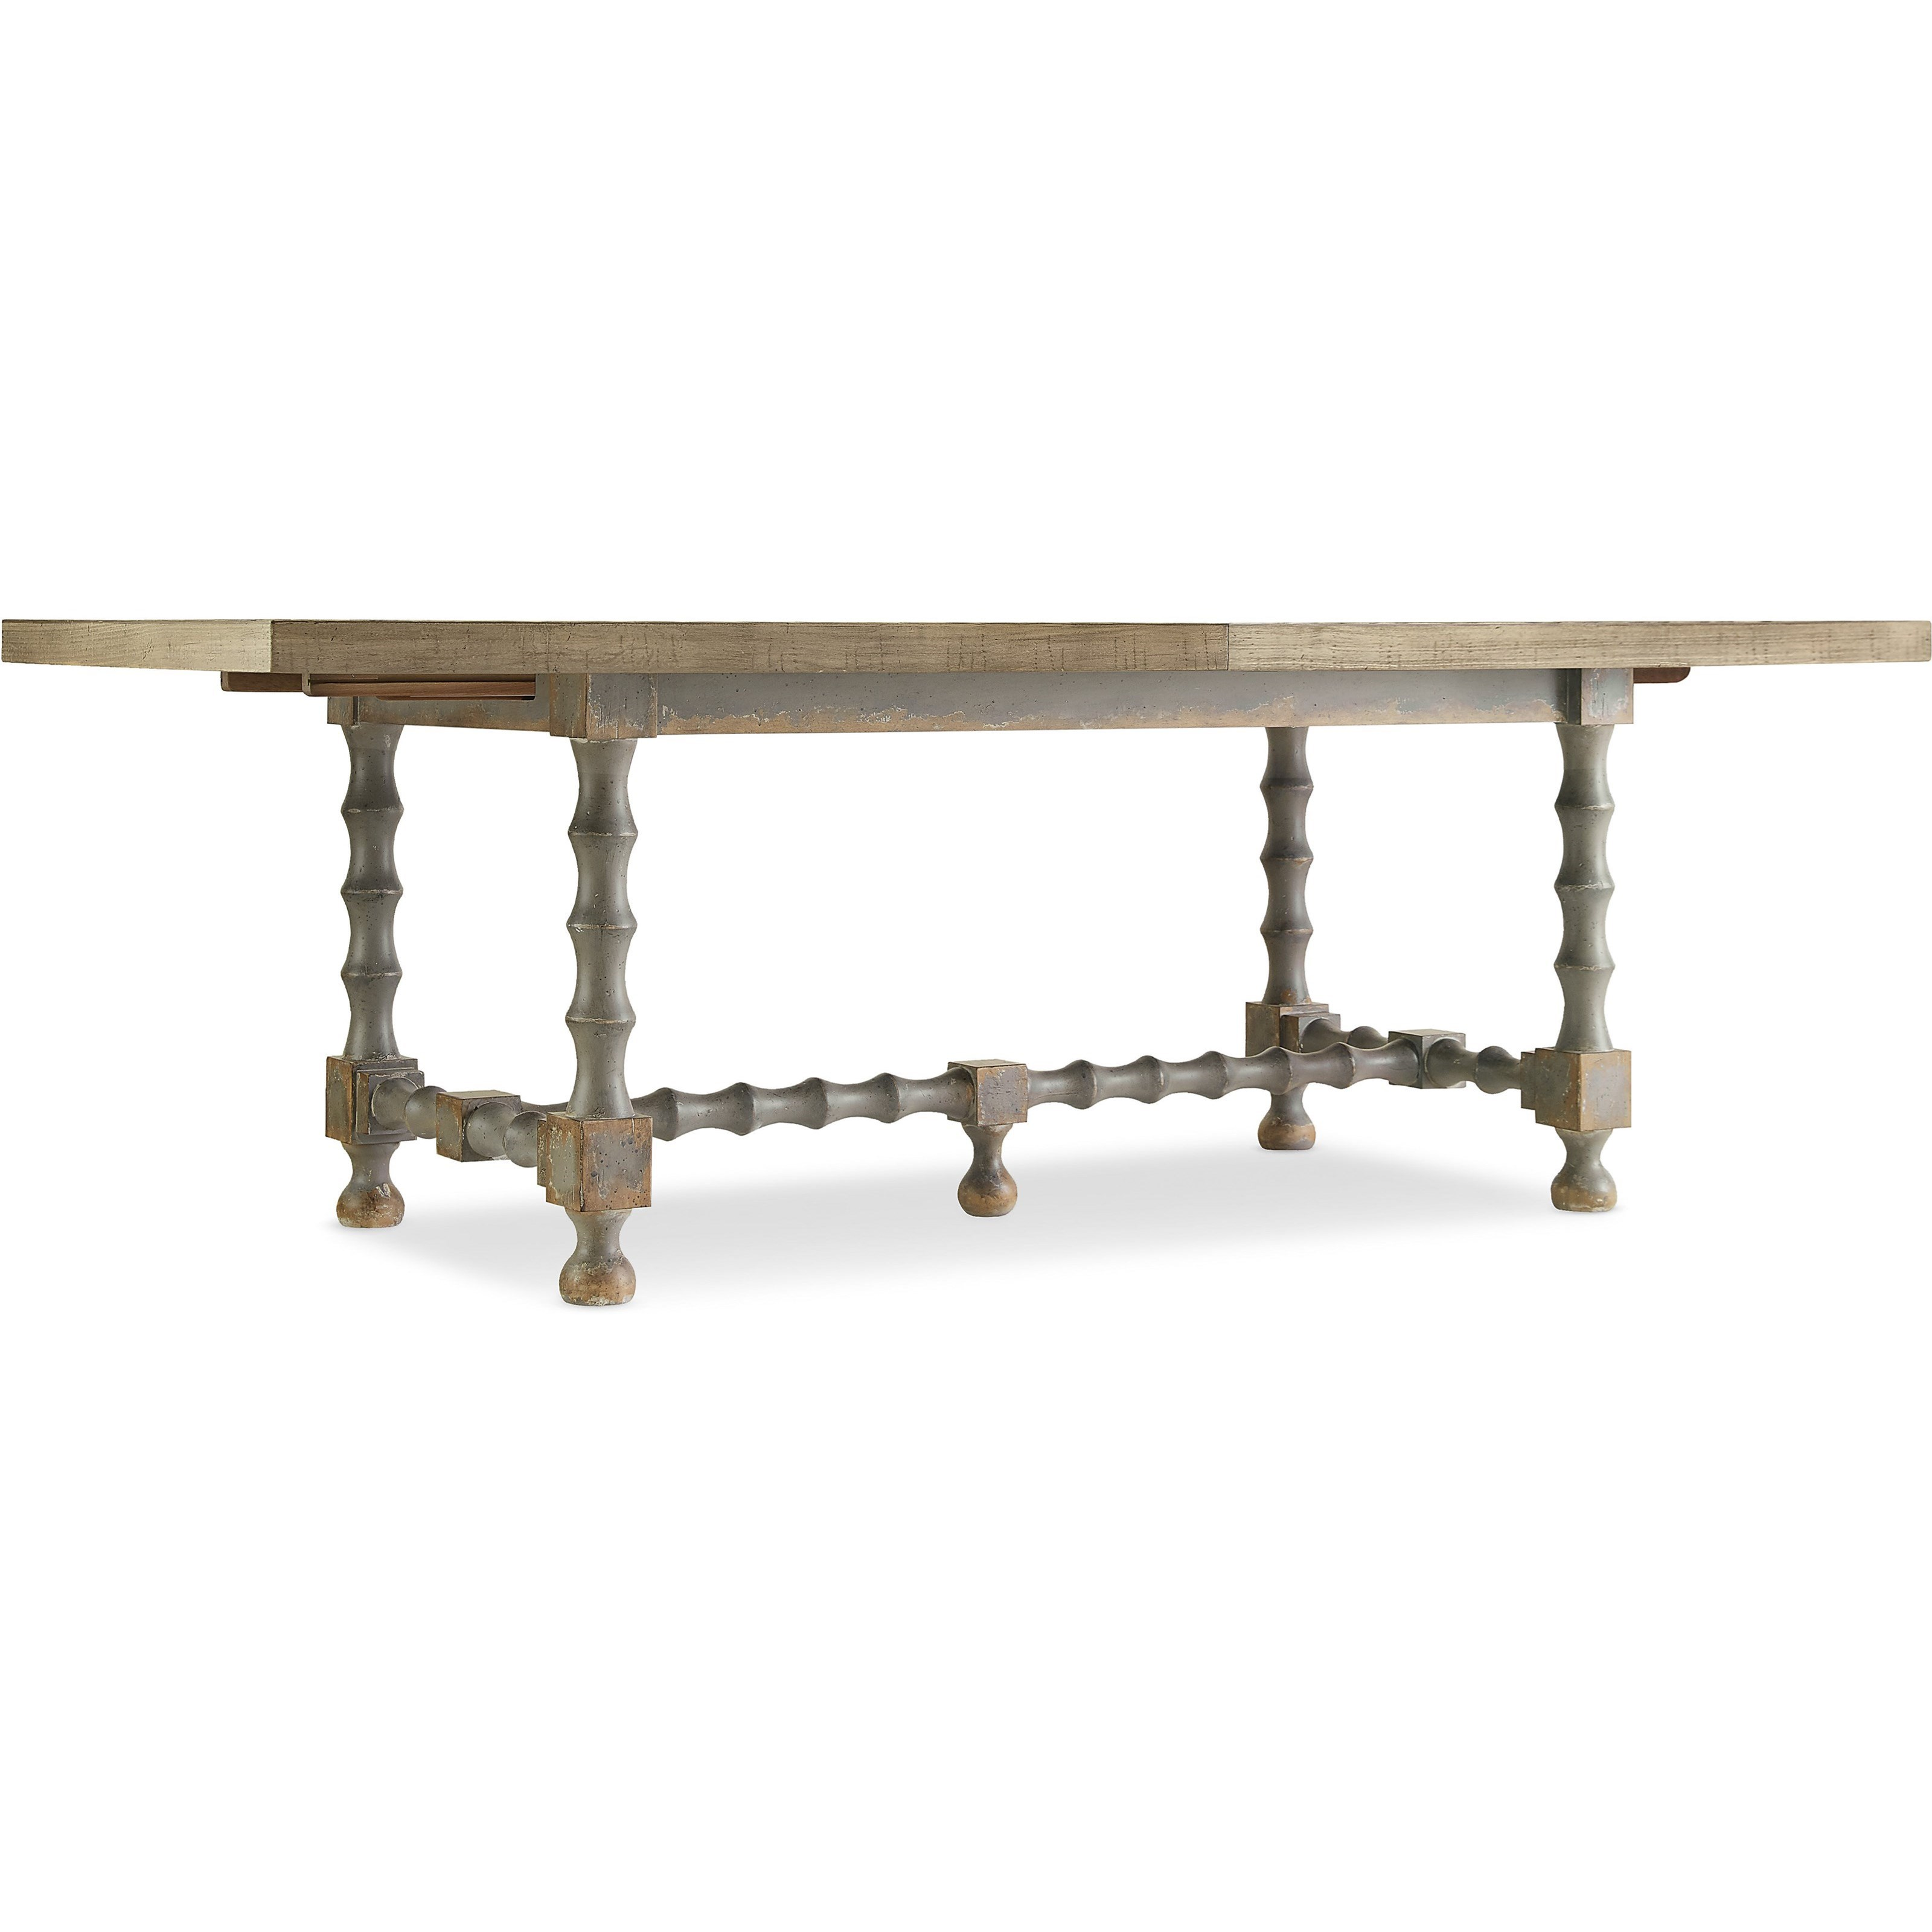 84in Trestle Table with Leaves